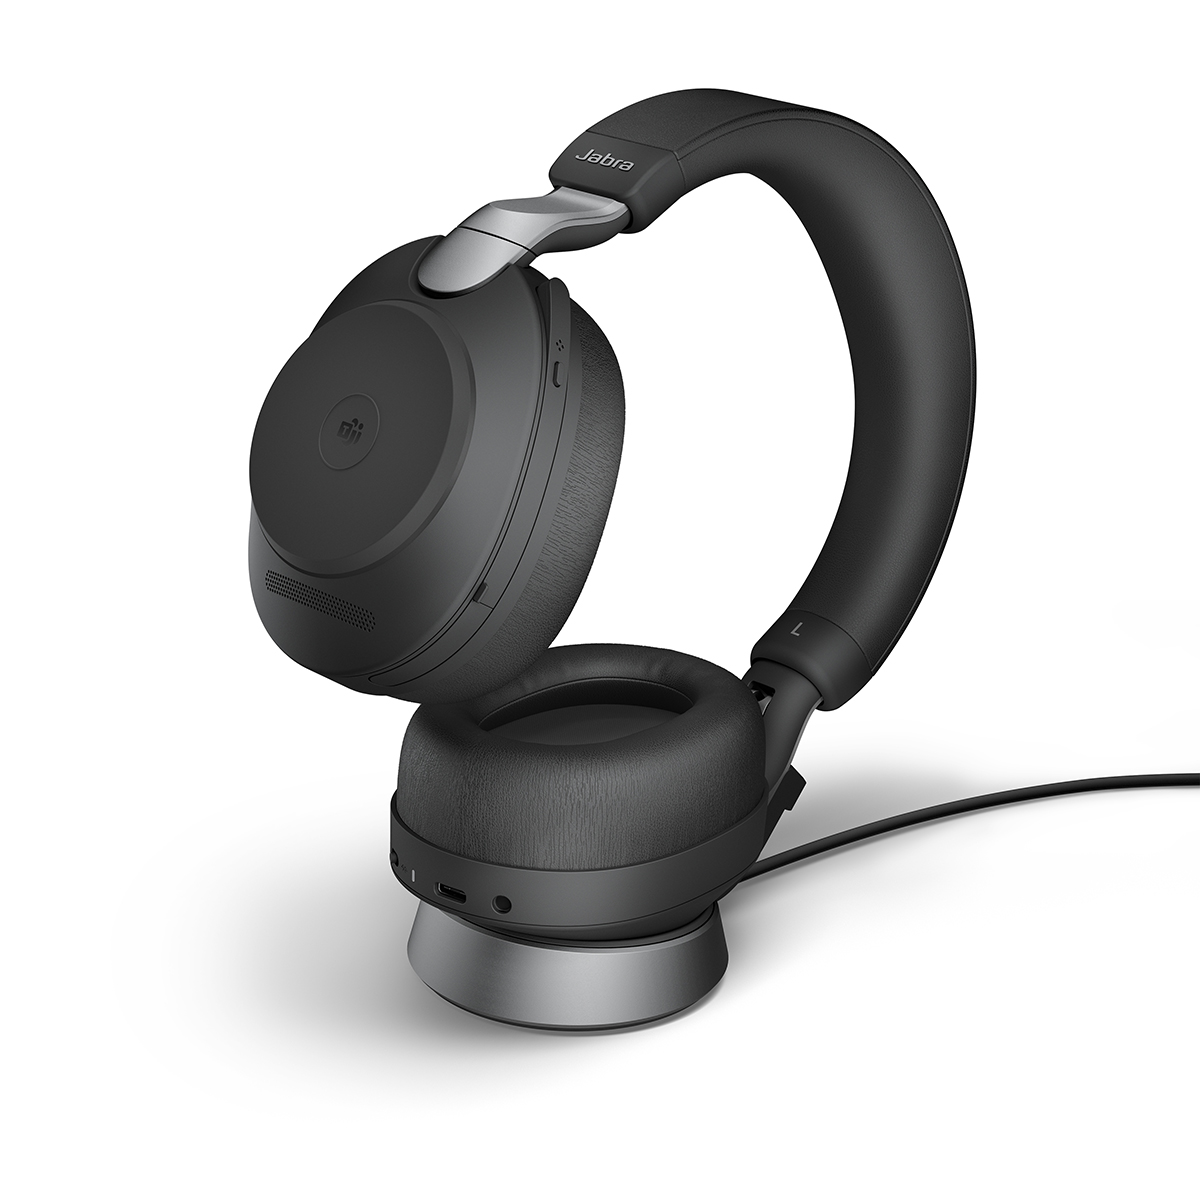 Jabra Evolve2 85 USB-A UC Stereo Headset and Charging Stand